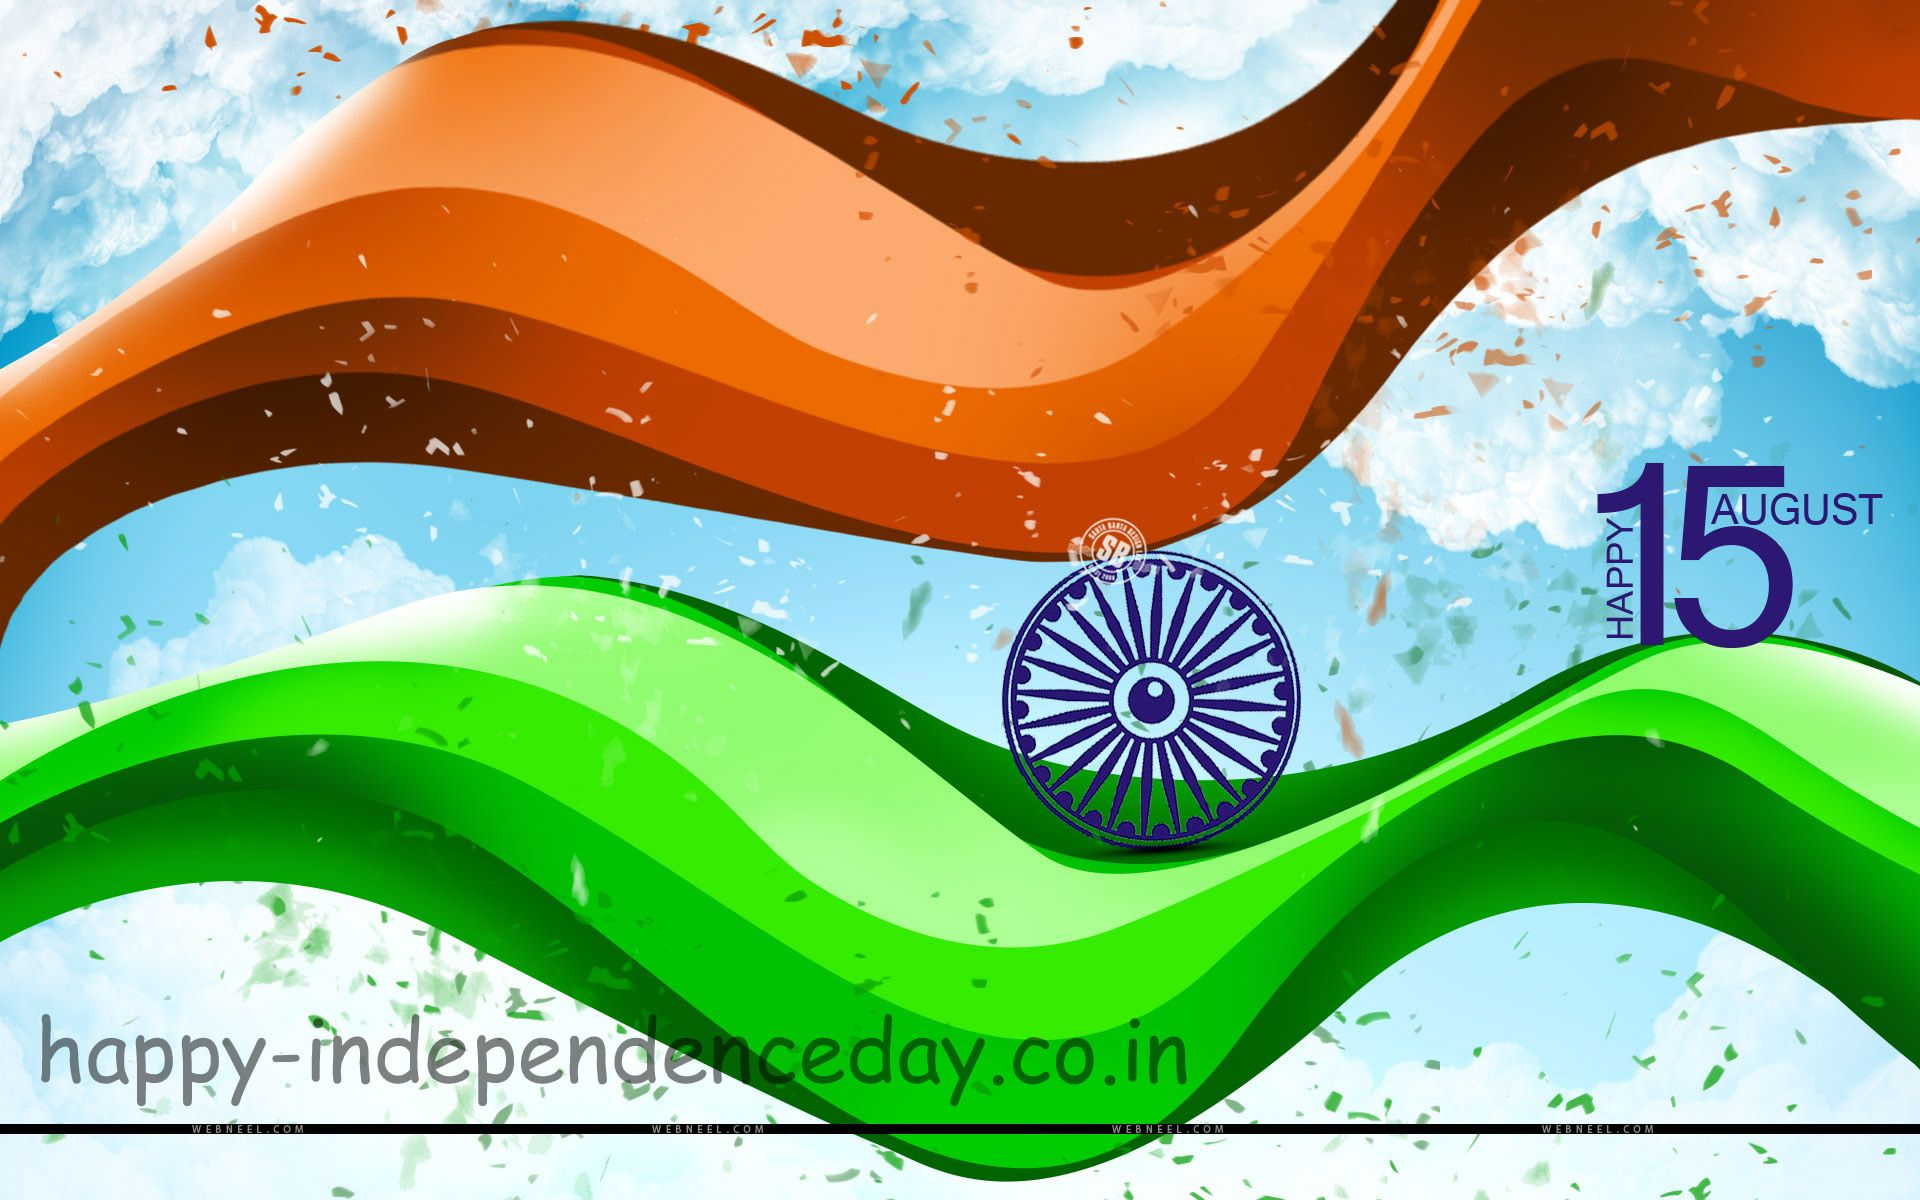 pin by kasim memon on independence day images let us celebrate 15 2015 happy independence day patriotic quotes messages send national flag images hd of happy independence day